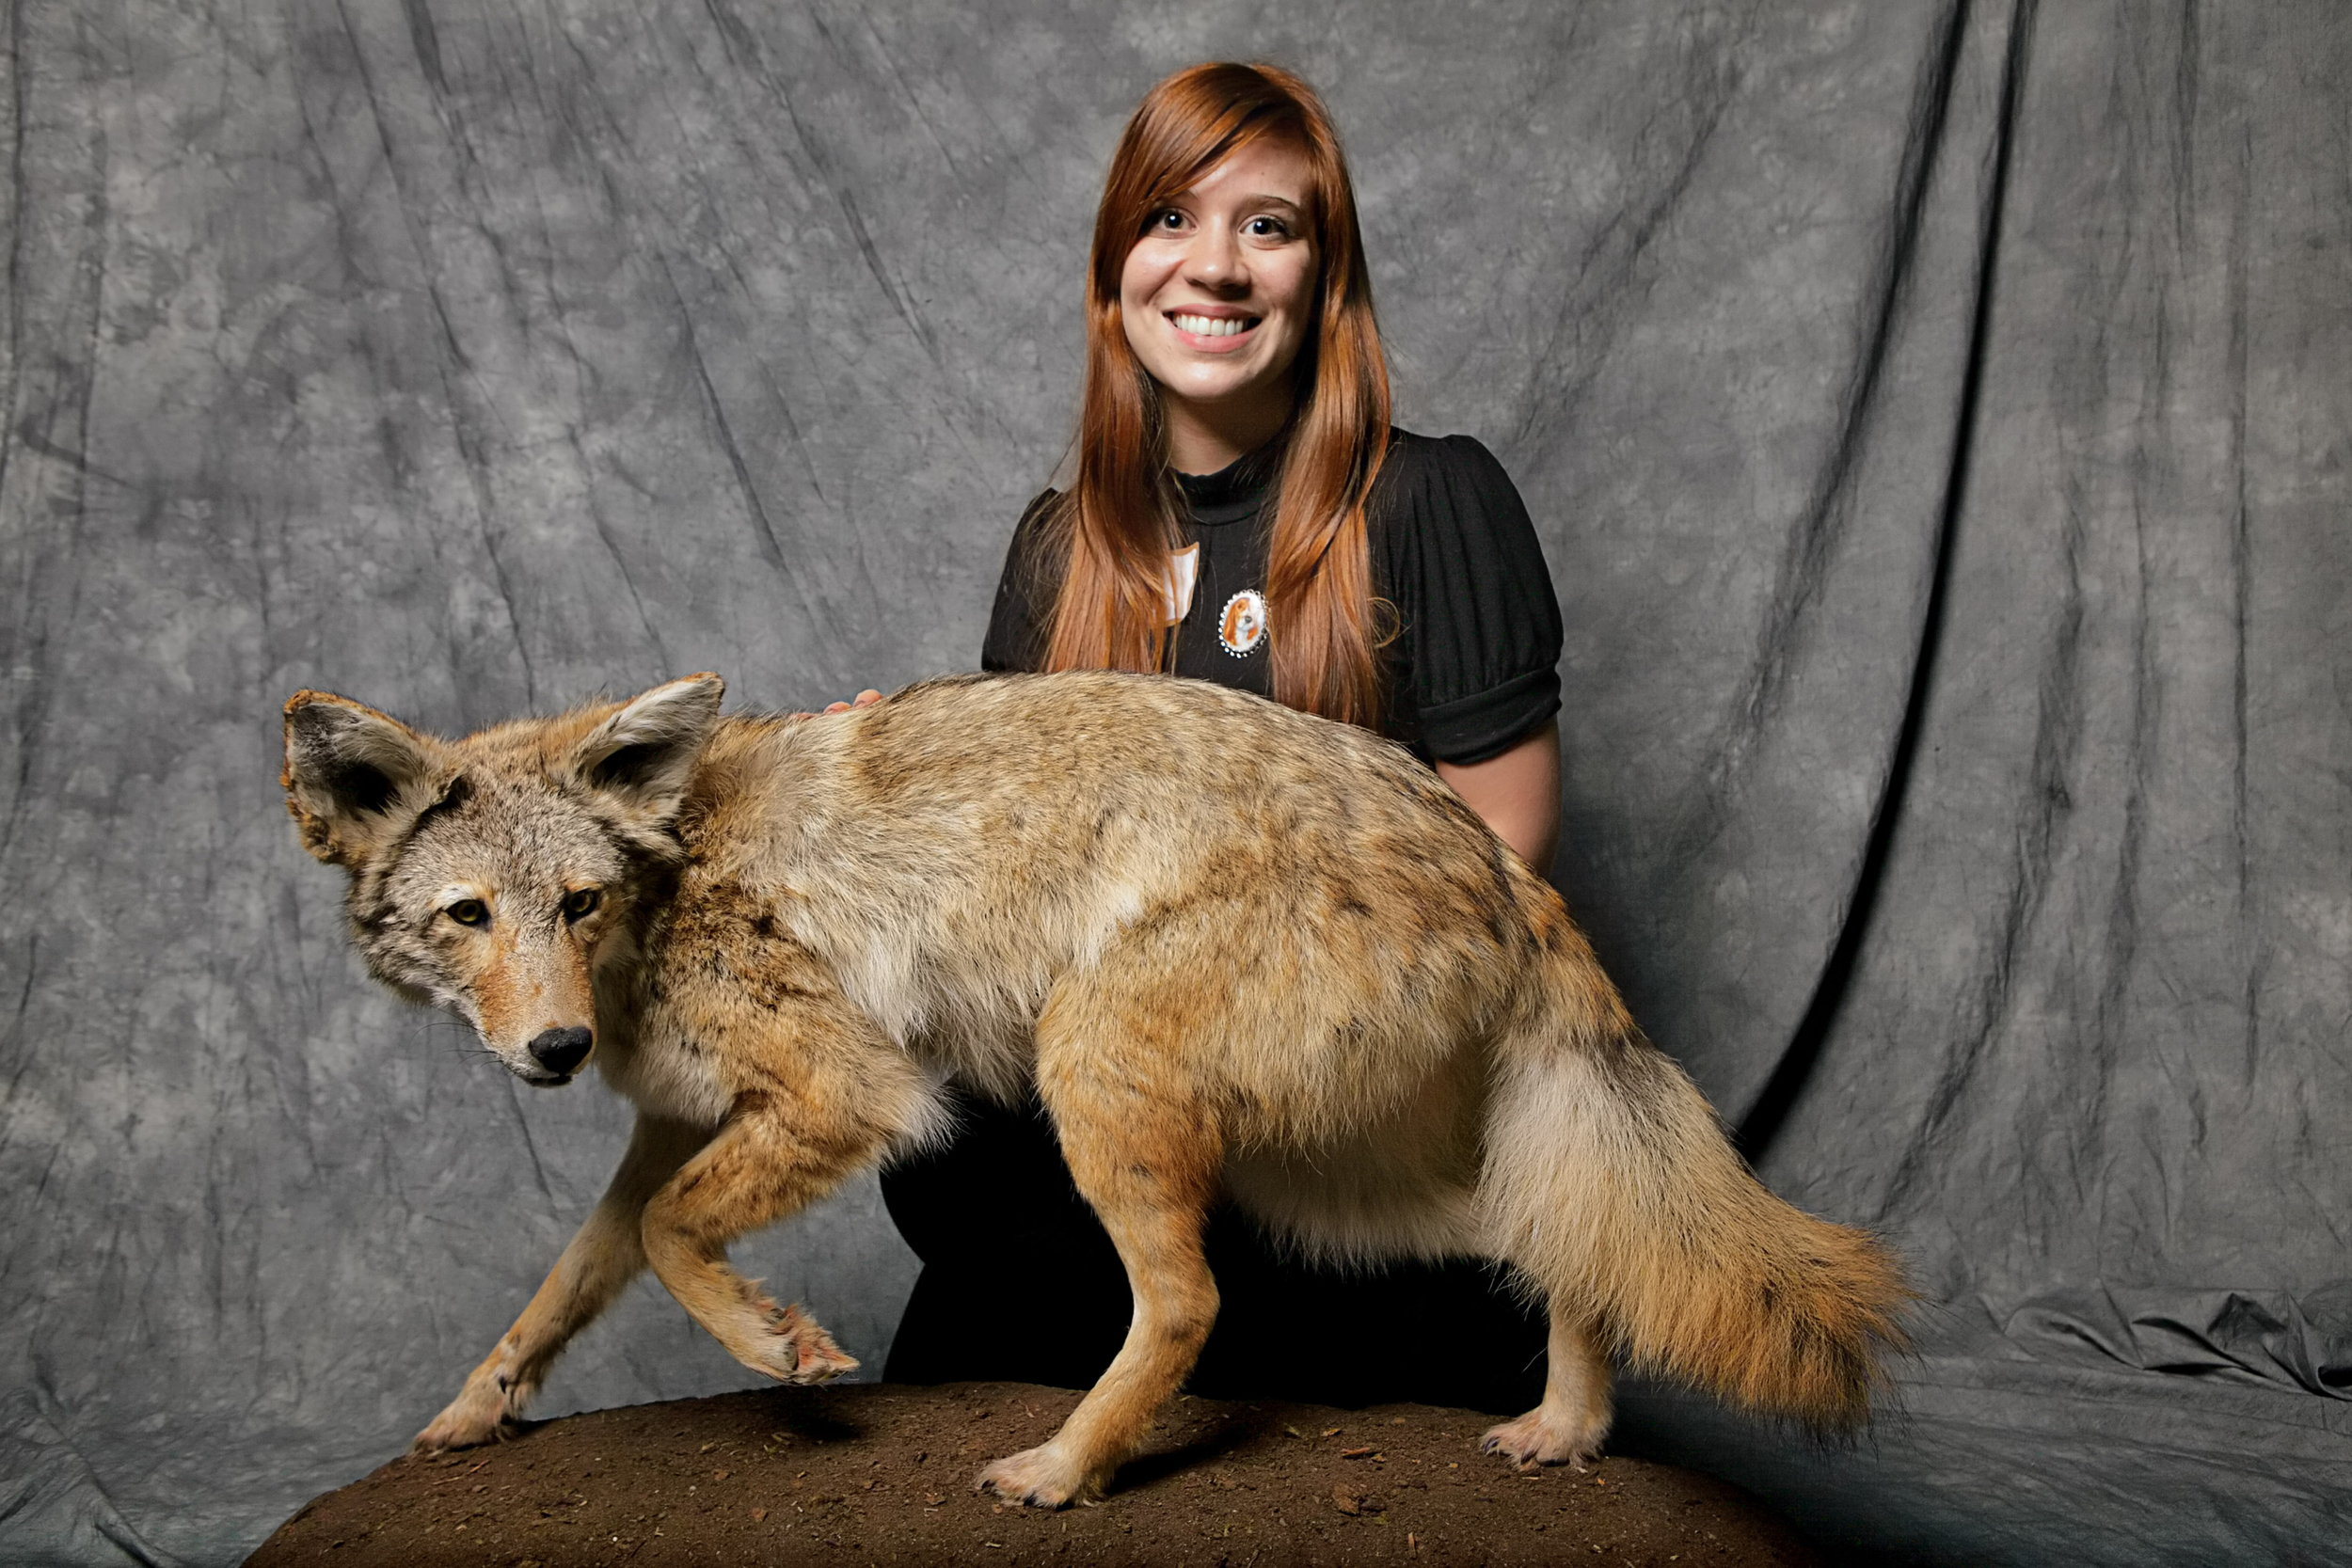 20111209_taxidermy_02.jpg